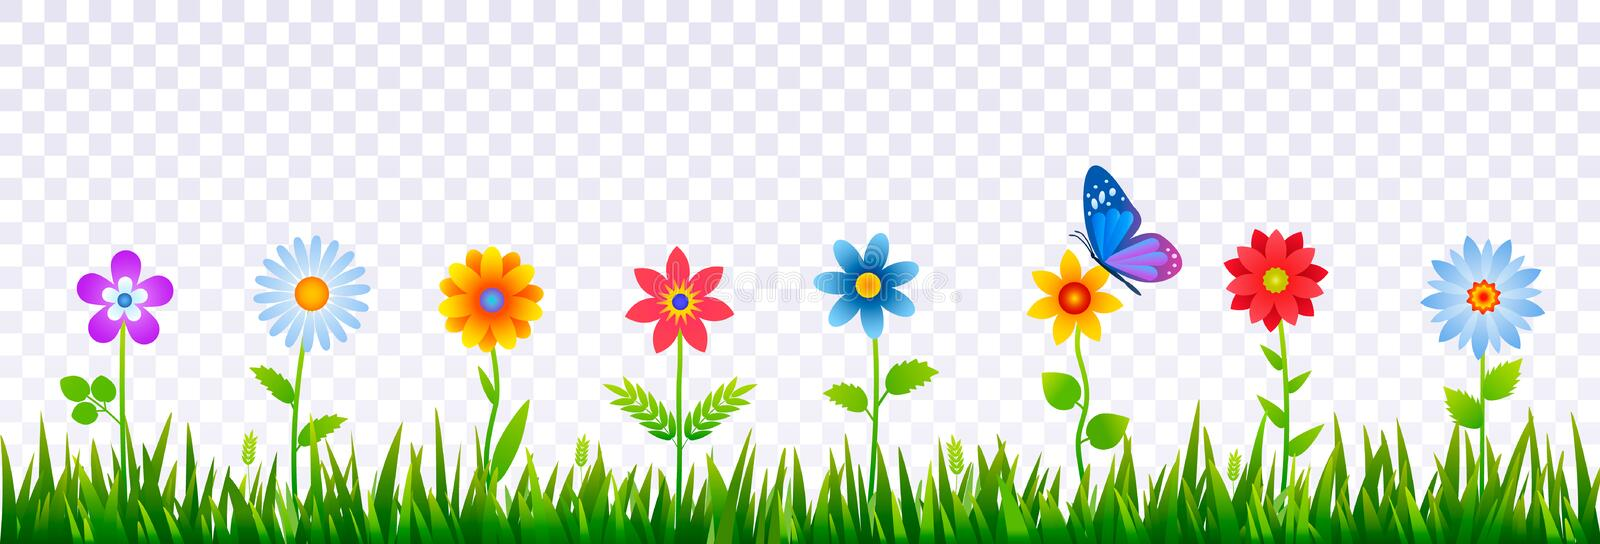 Bright border of green grass with spring flowers. Template for decorating Easter cards, posters, banners. Realistic vector vector illustration